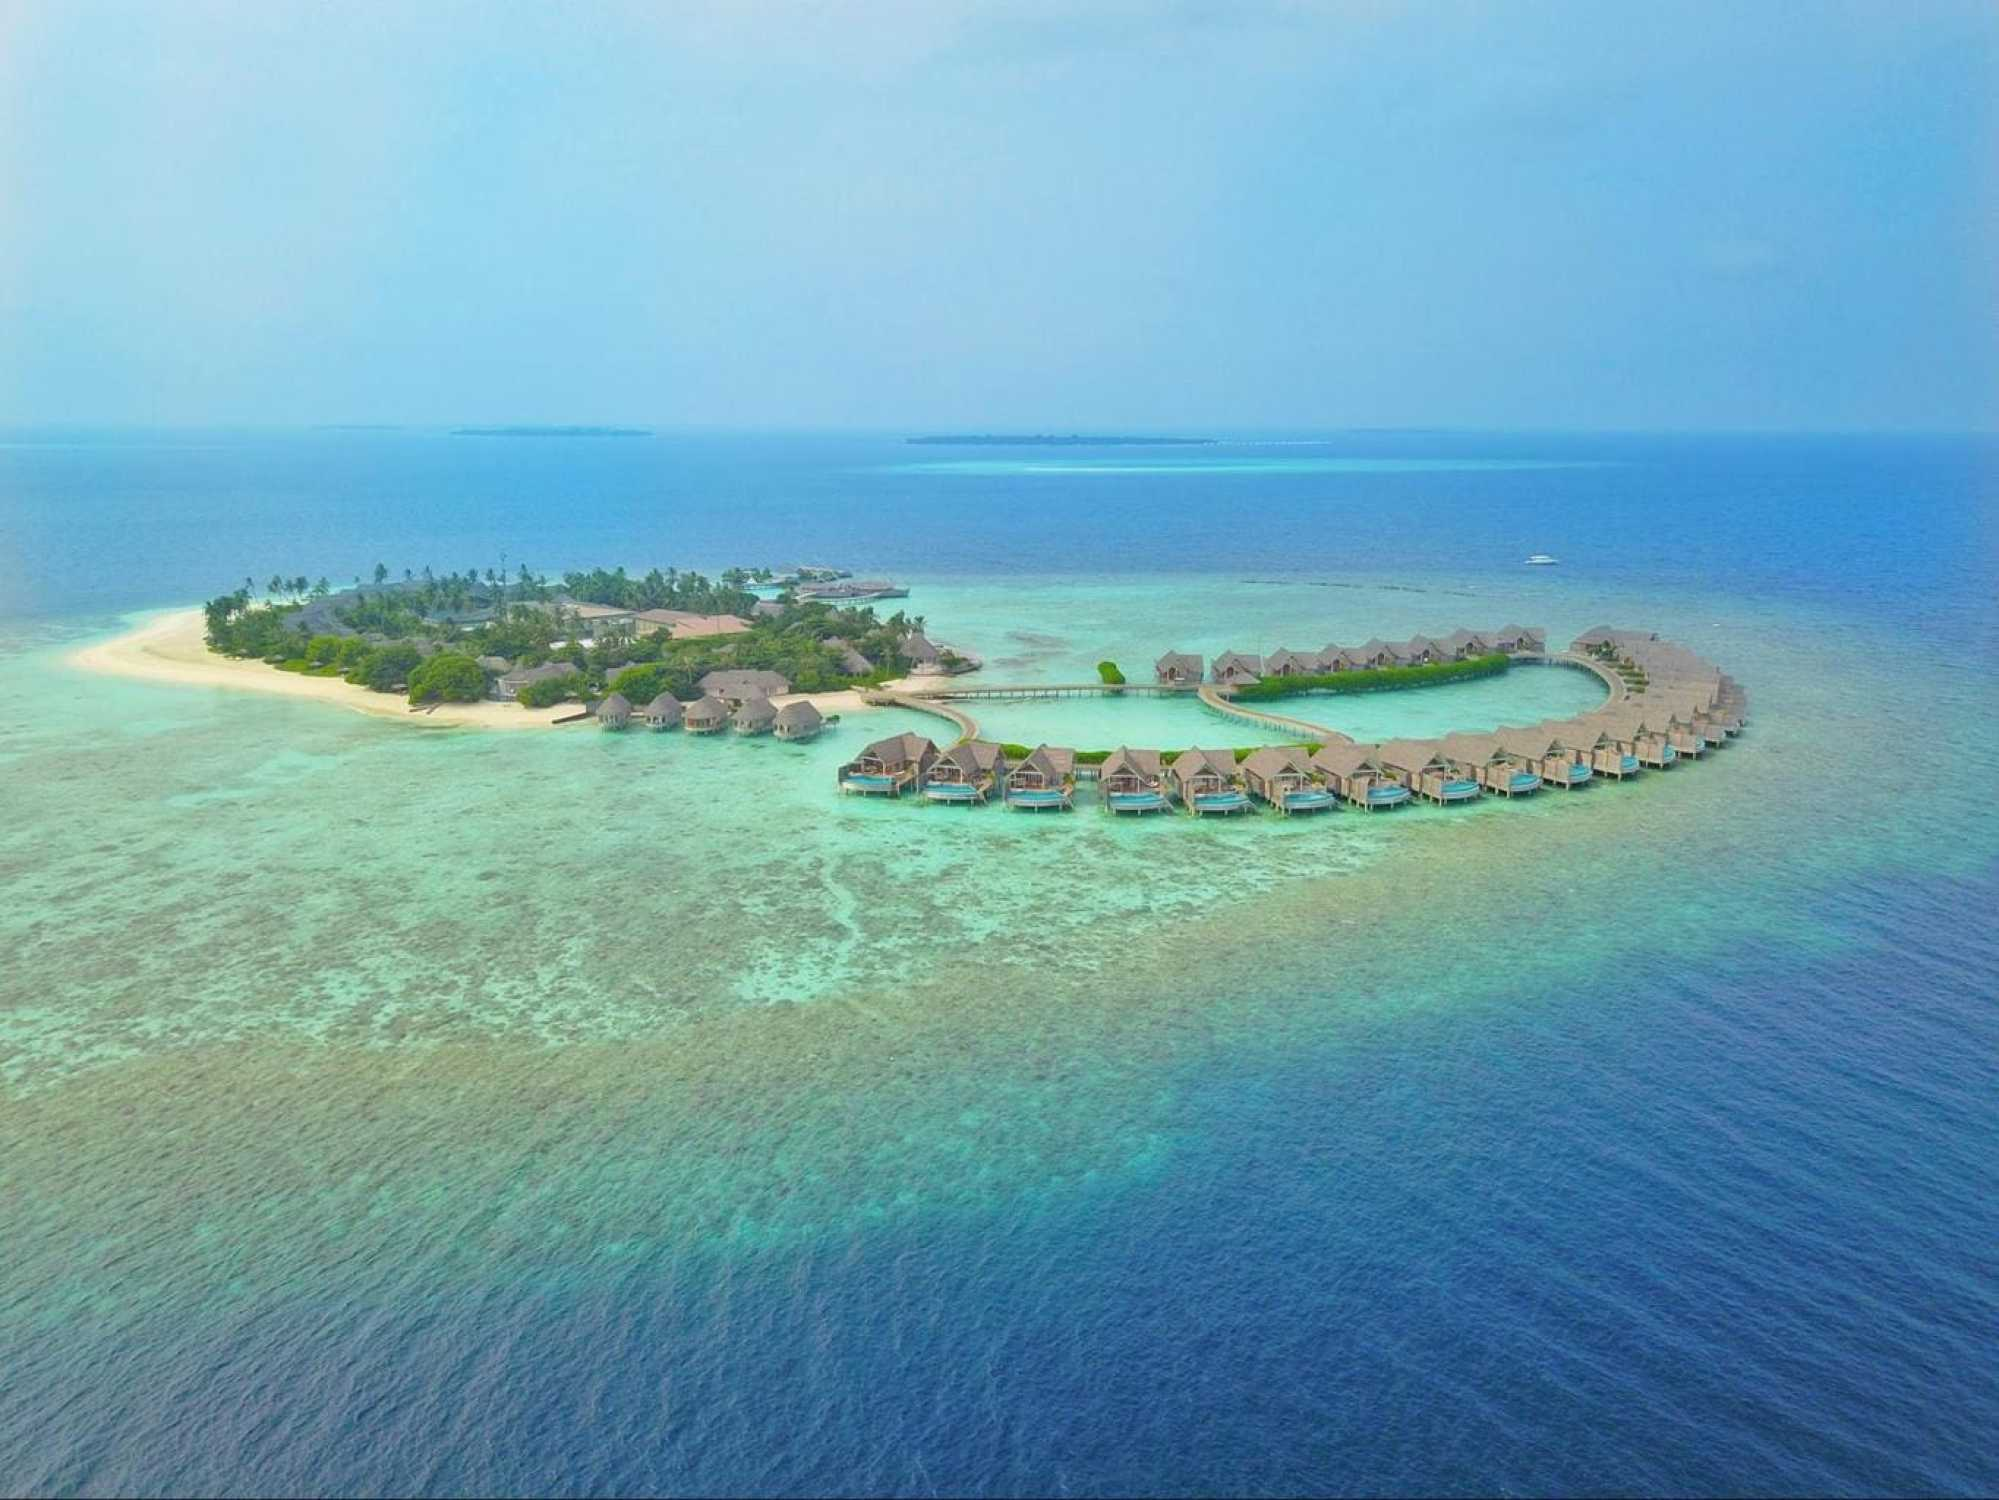 Drone shot of MIlaidhoo at sunset